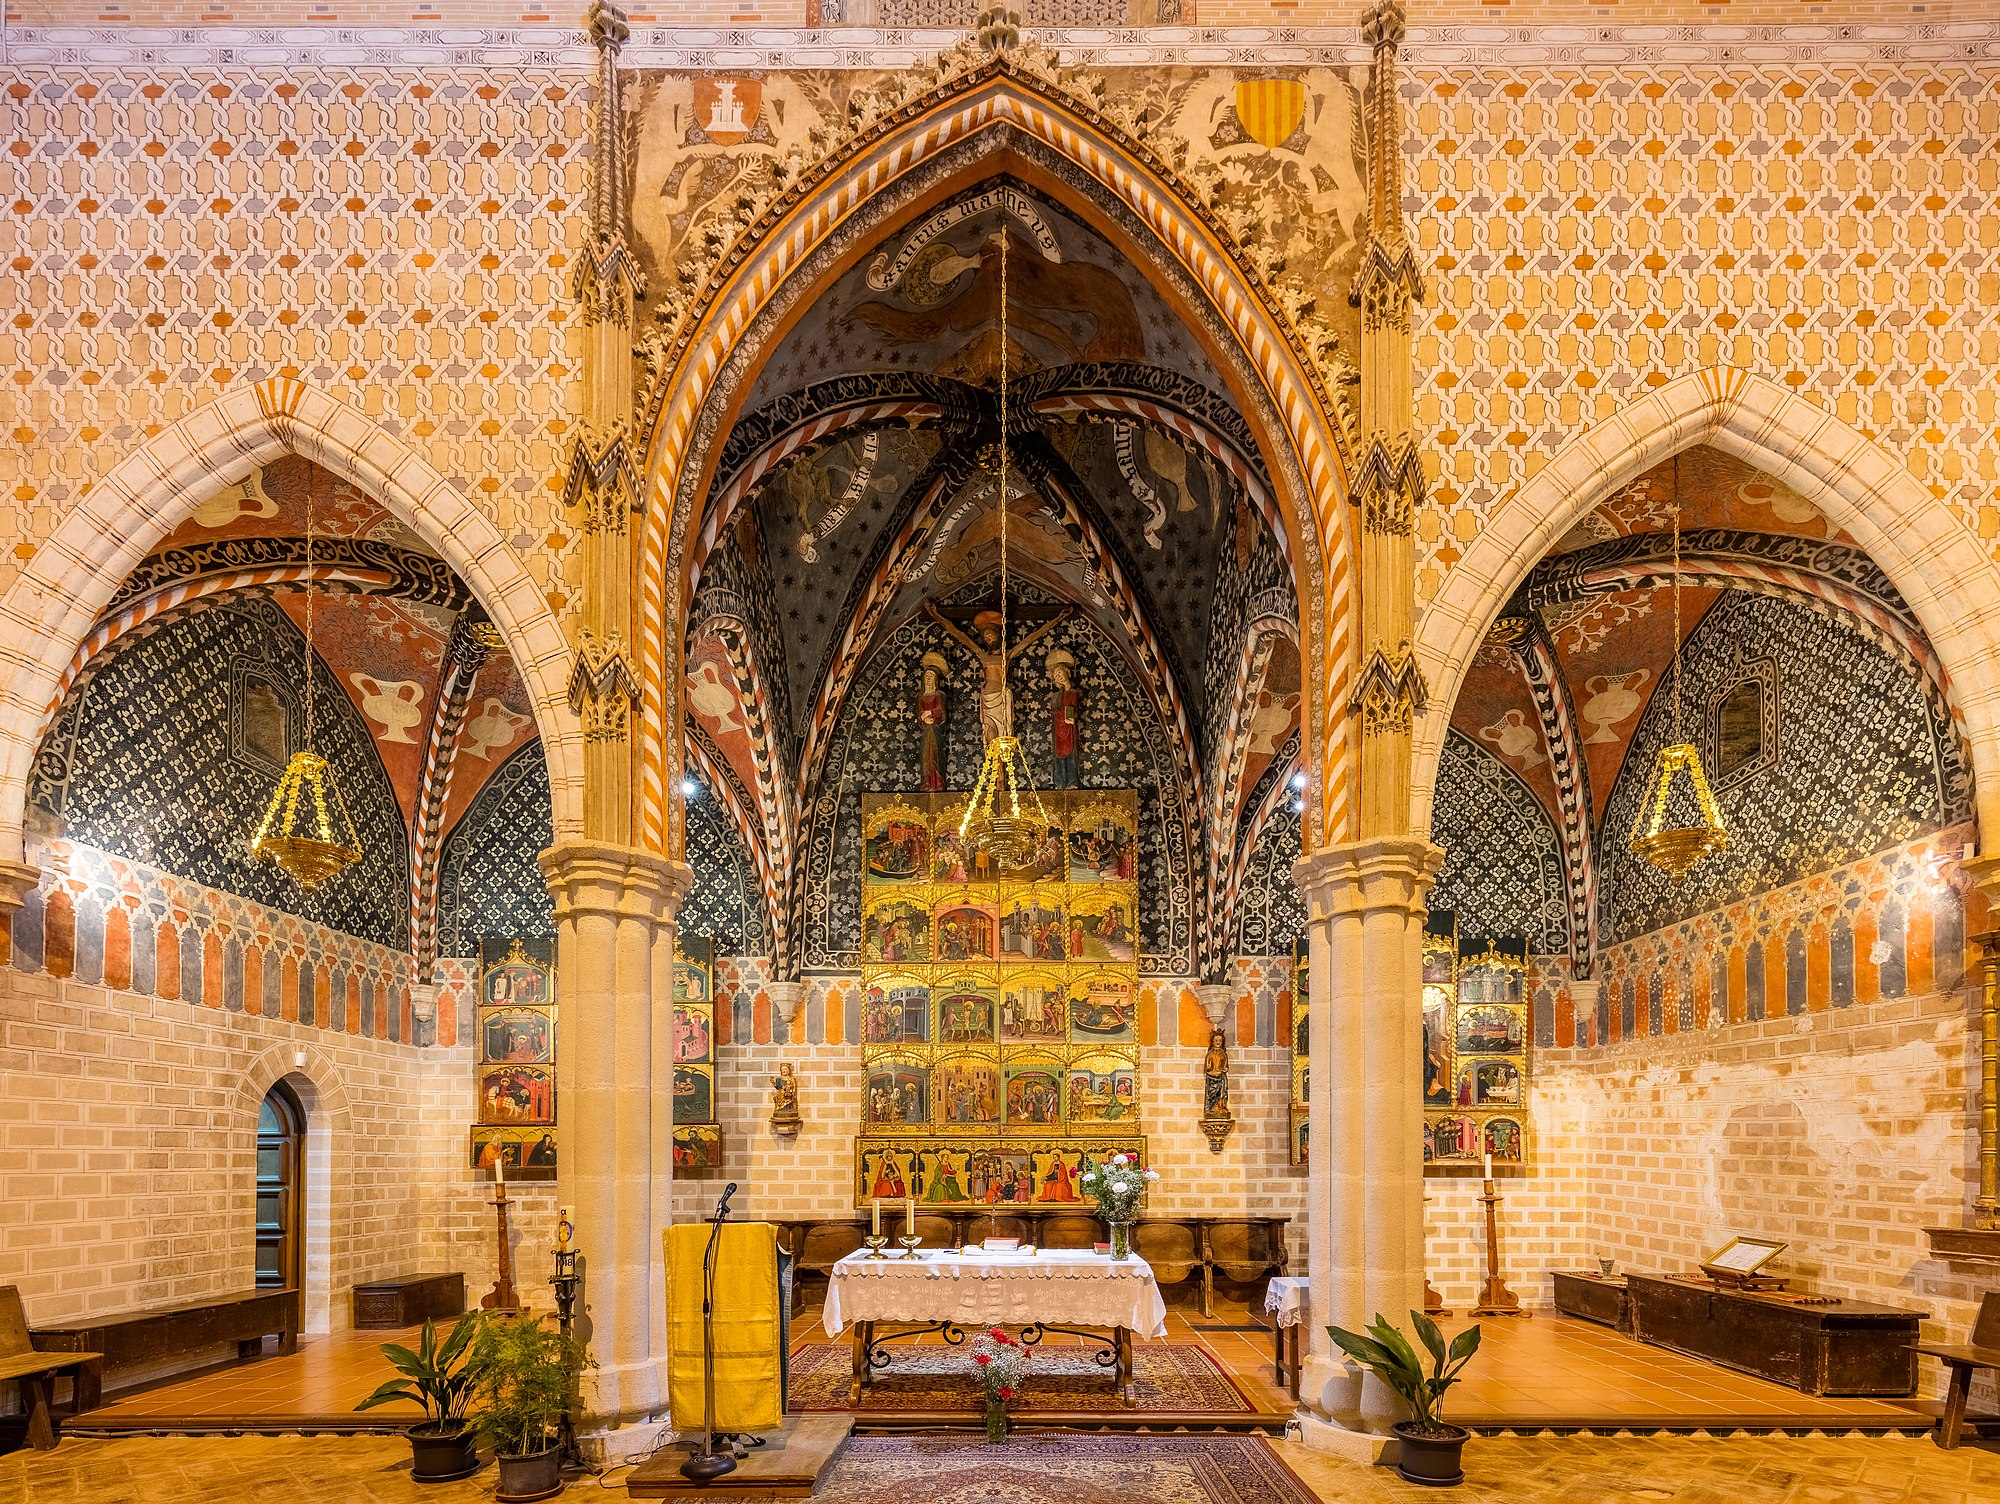 Altar of the church of St Felix, Torralba de Ribota, province of Zaragoza, Spain. The church, of mudéjar and late gothic style was built between 1367 and 1420. The church is a national heritage monument in Spain (known as Bien de Interés Cultural) since 2006.